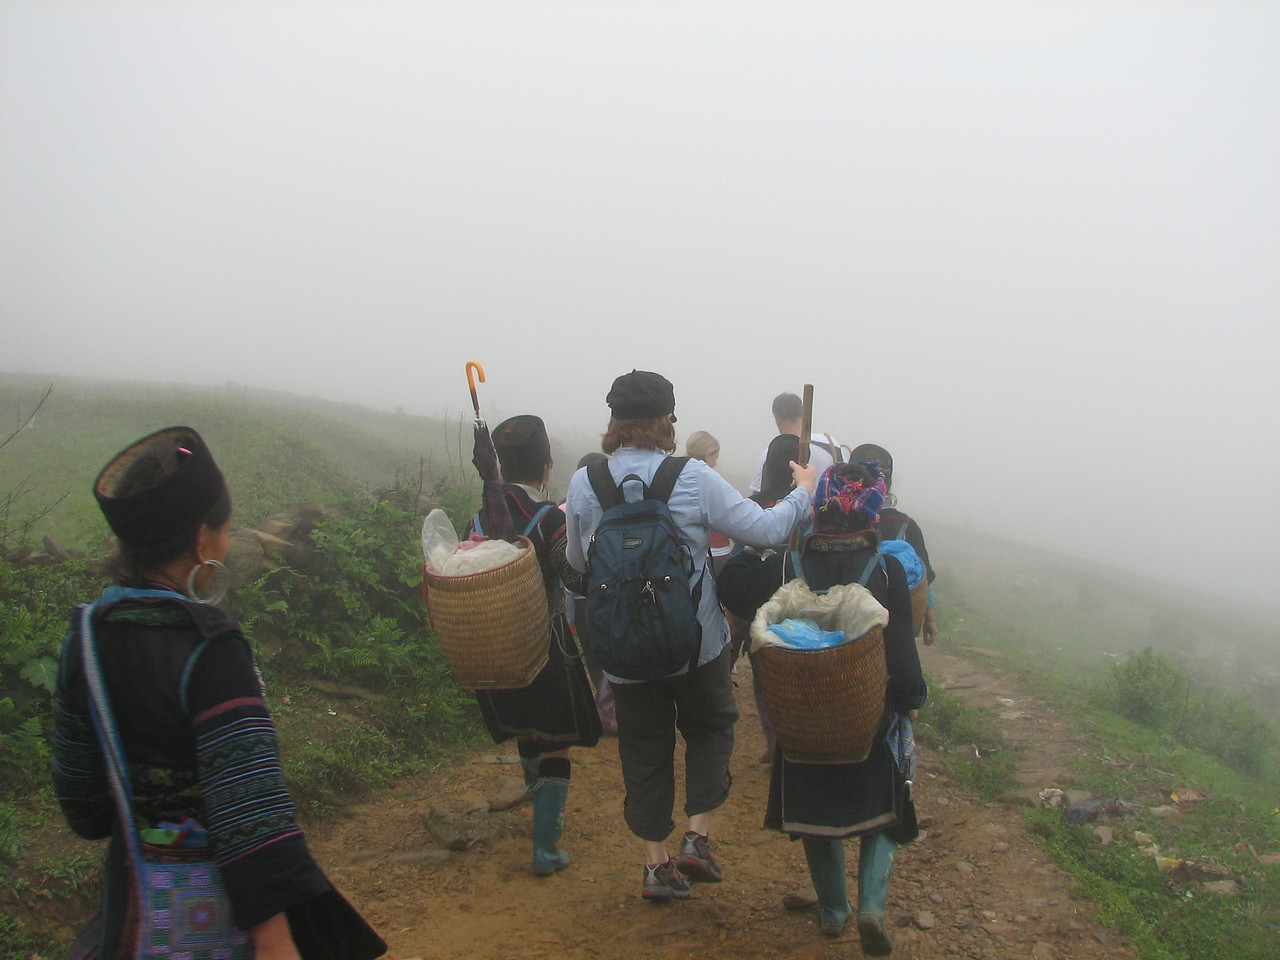 Our Hmong ladies were very concerned that Deb would slip.